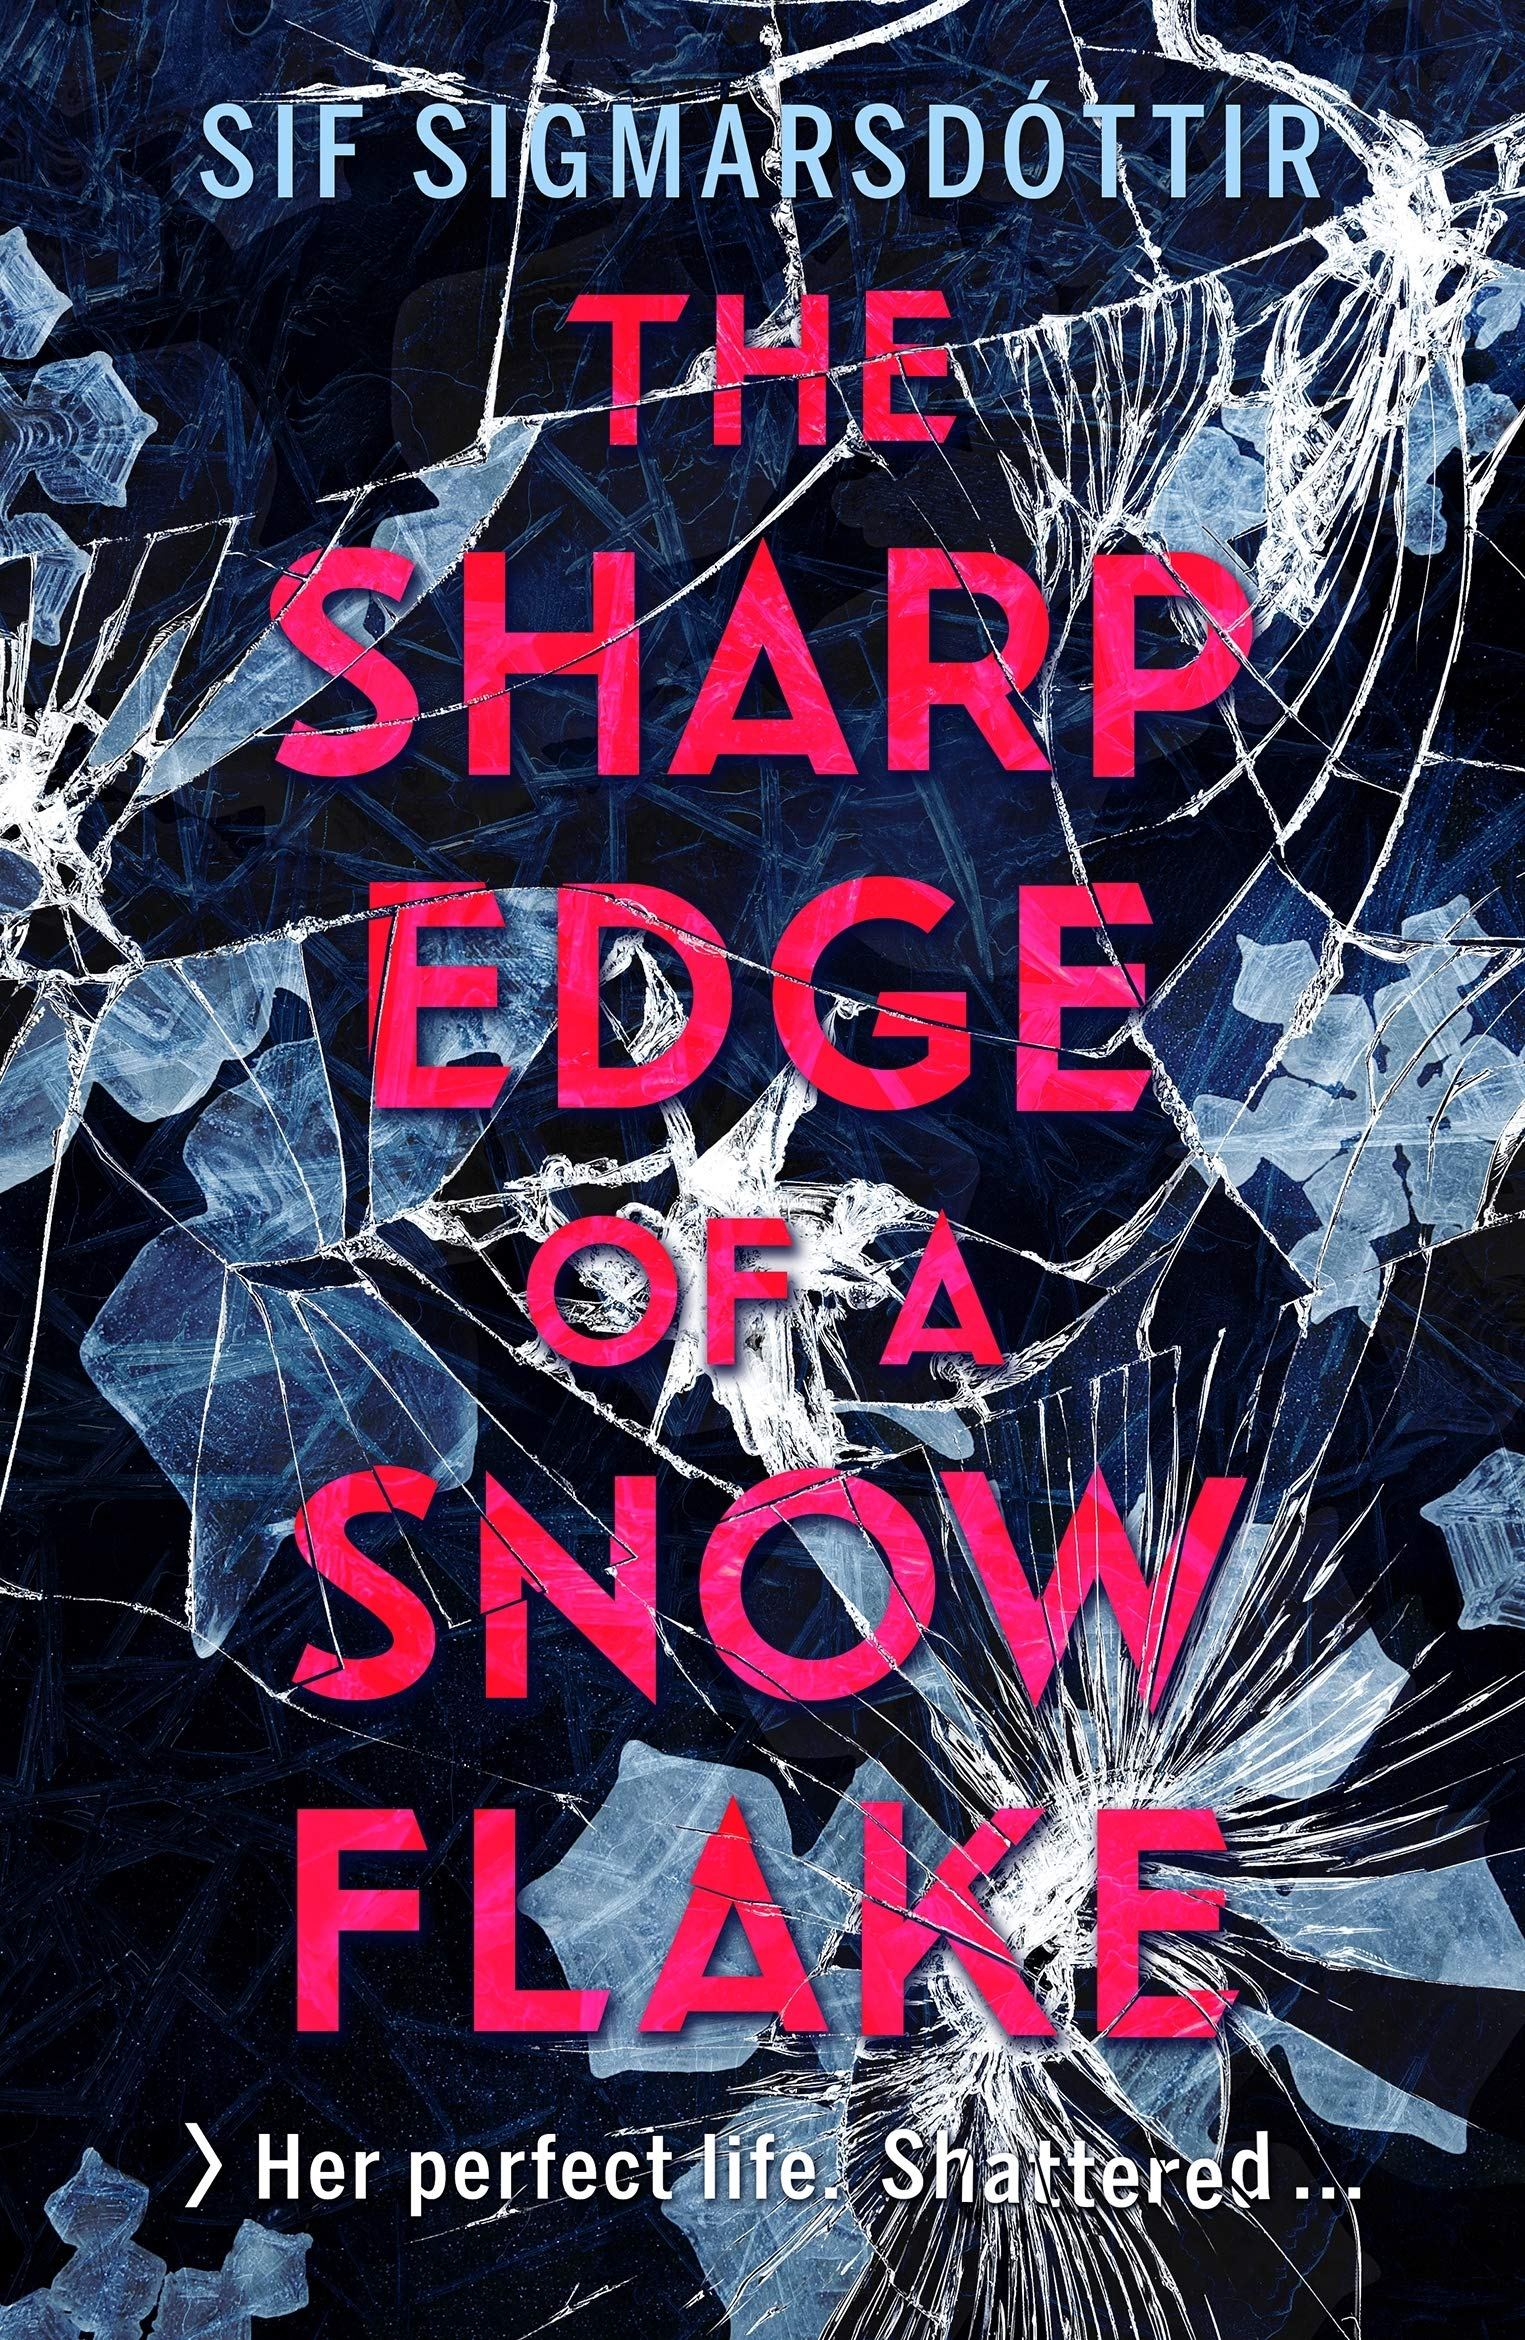 Sharp Edge Snowflake.jpg